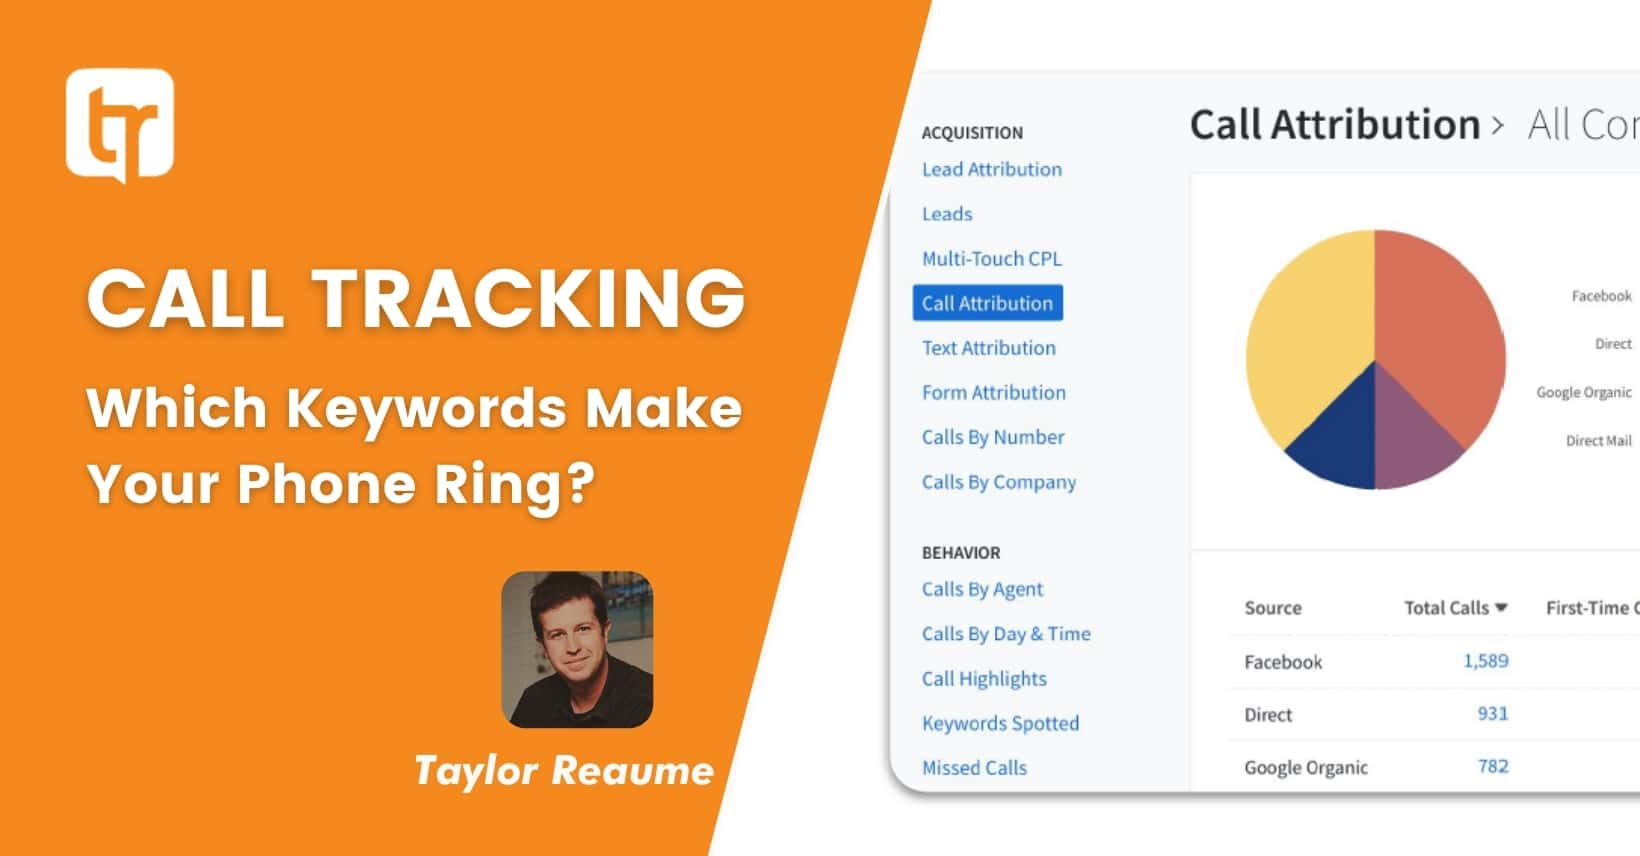 CALL TRACKING: Which Keywords Trigger Phone Calls?